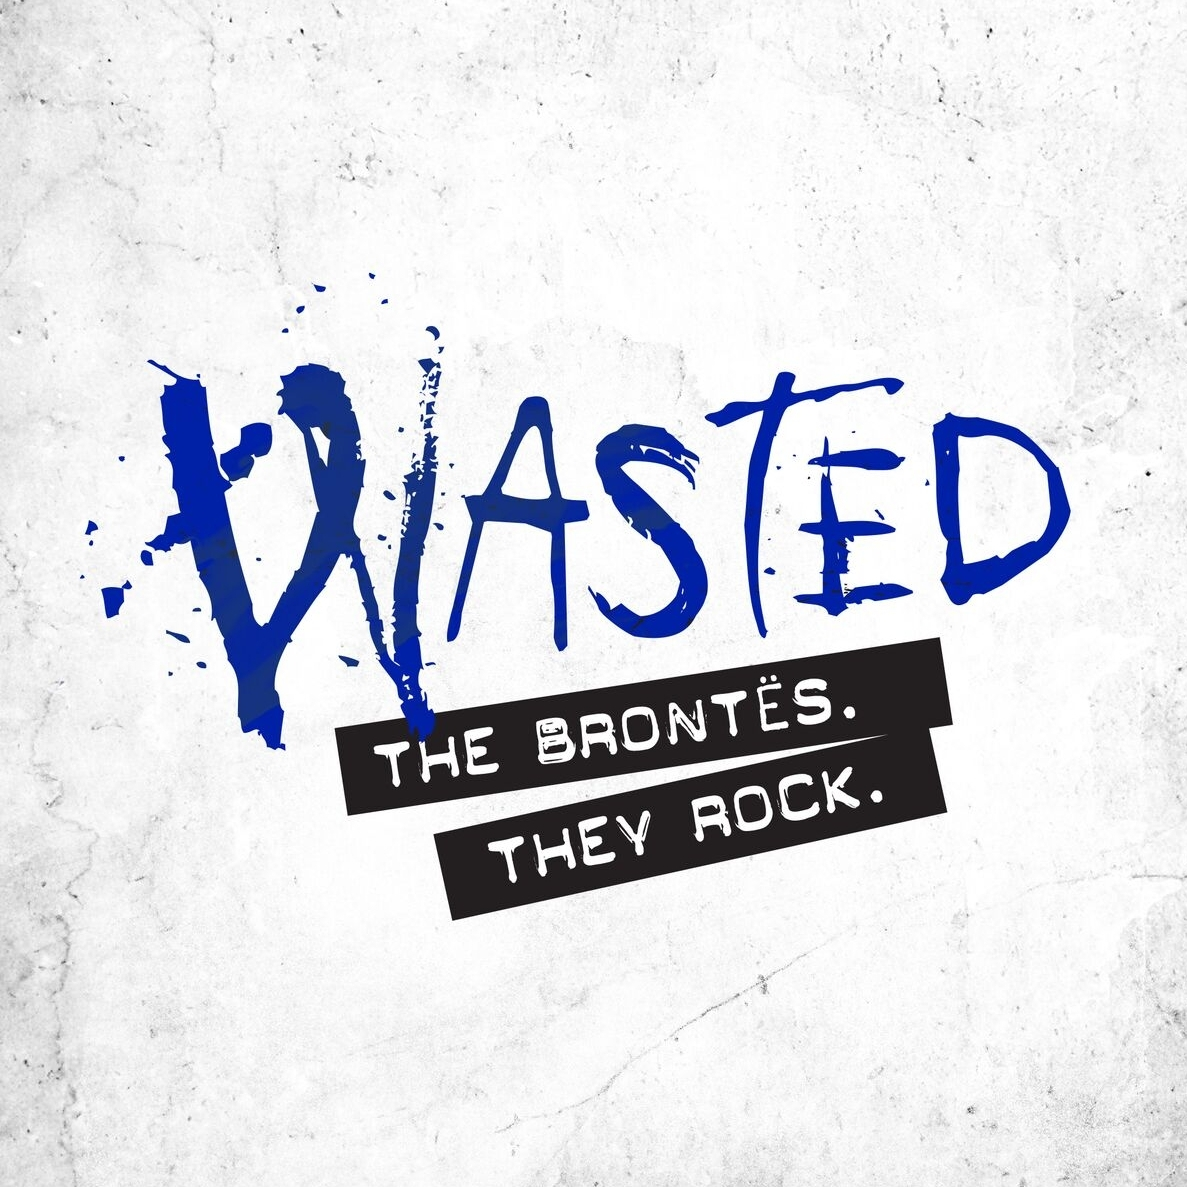 WASTED - KEVIN SPACEY AWARD  AdAM was the recipient of a kevin spacey artists of choice award 2016 for musical theatre. this was to support a workshop production of this new rock musical about the brontËs at the west yorkshire playhouse which was also supported by the arts council of england.  MORE INFO